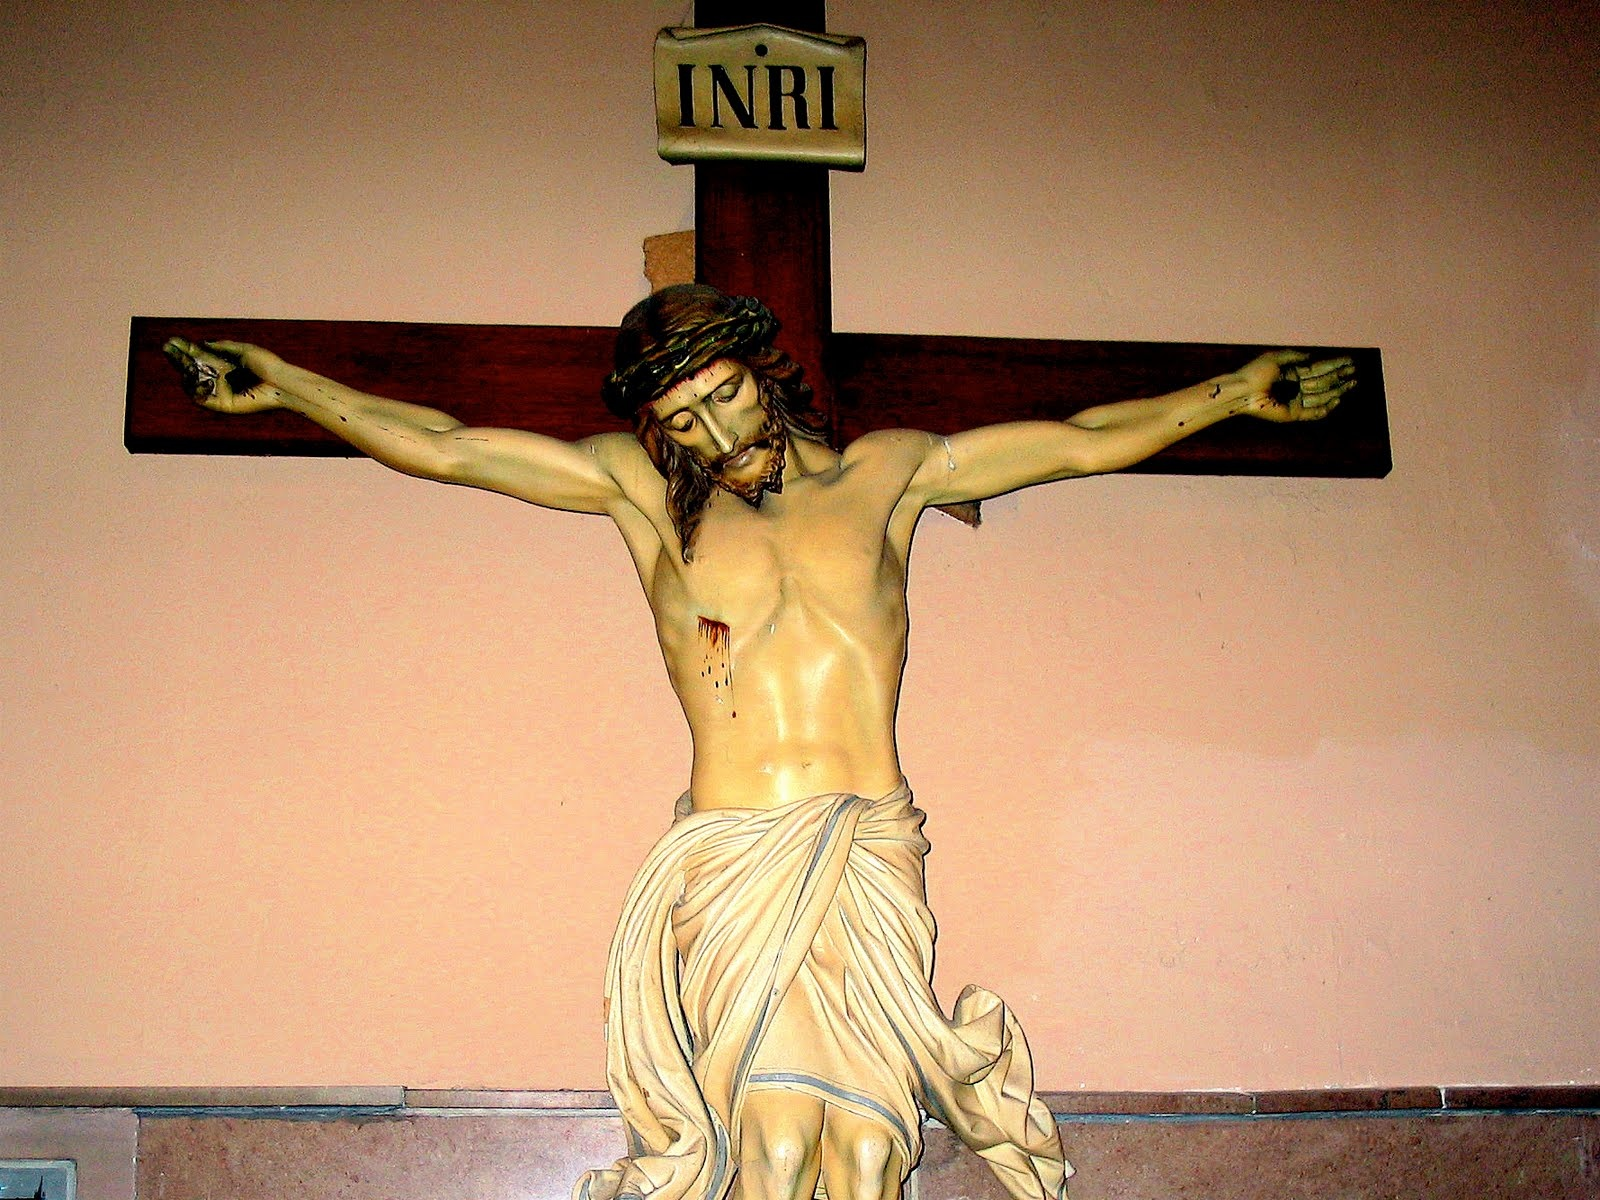 Jesus Christ INRI Wallpapers   1600x1200   625989 1600x1200